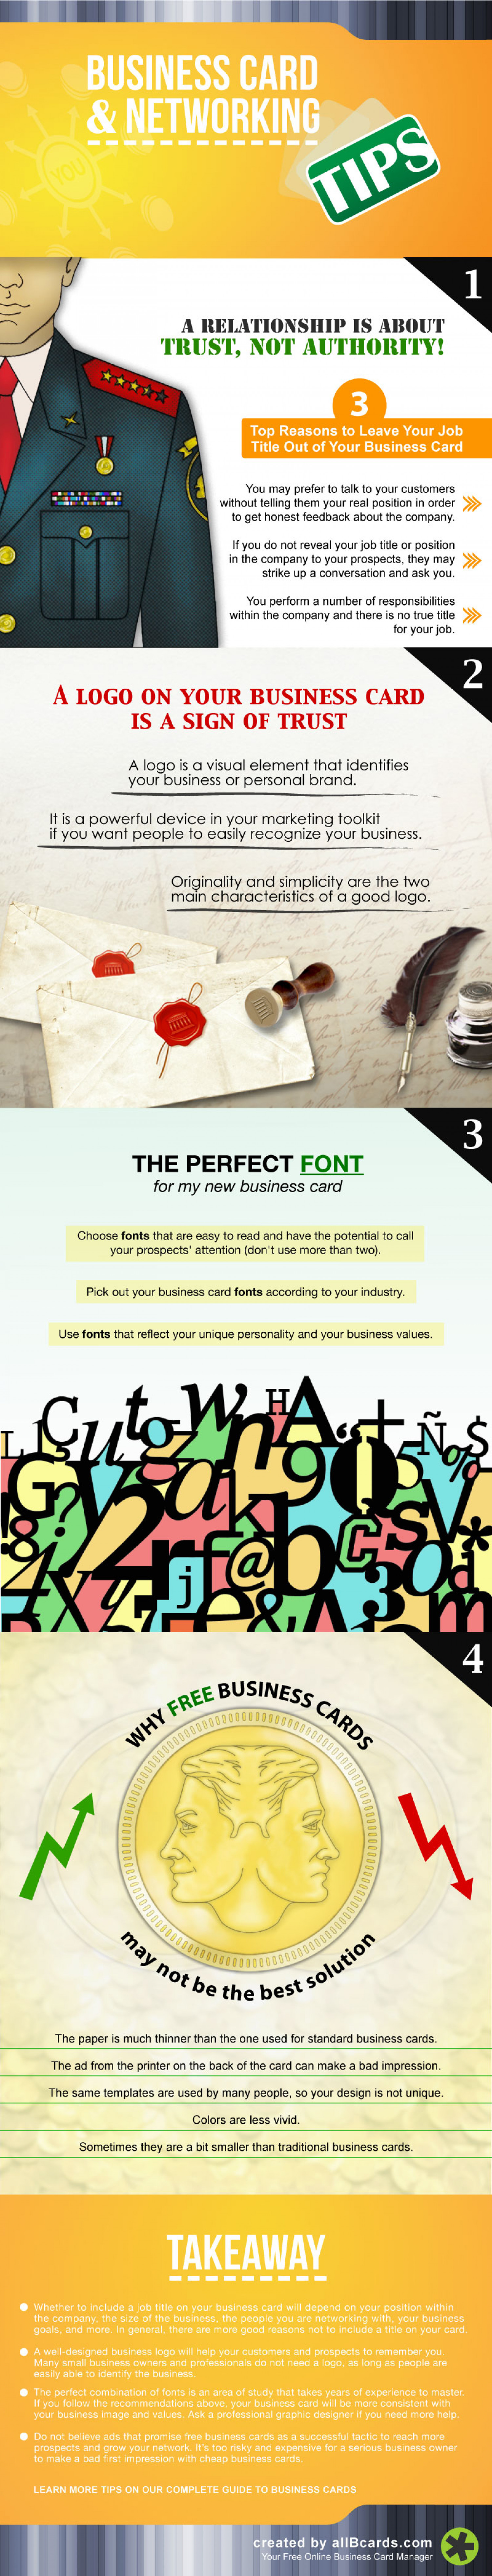 How to Design Effective Business Cards for Networking Events Infographic